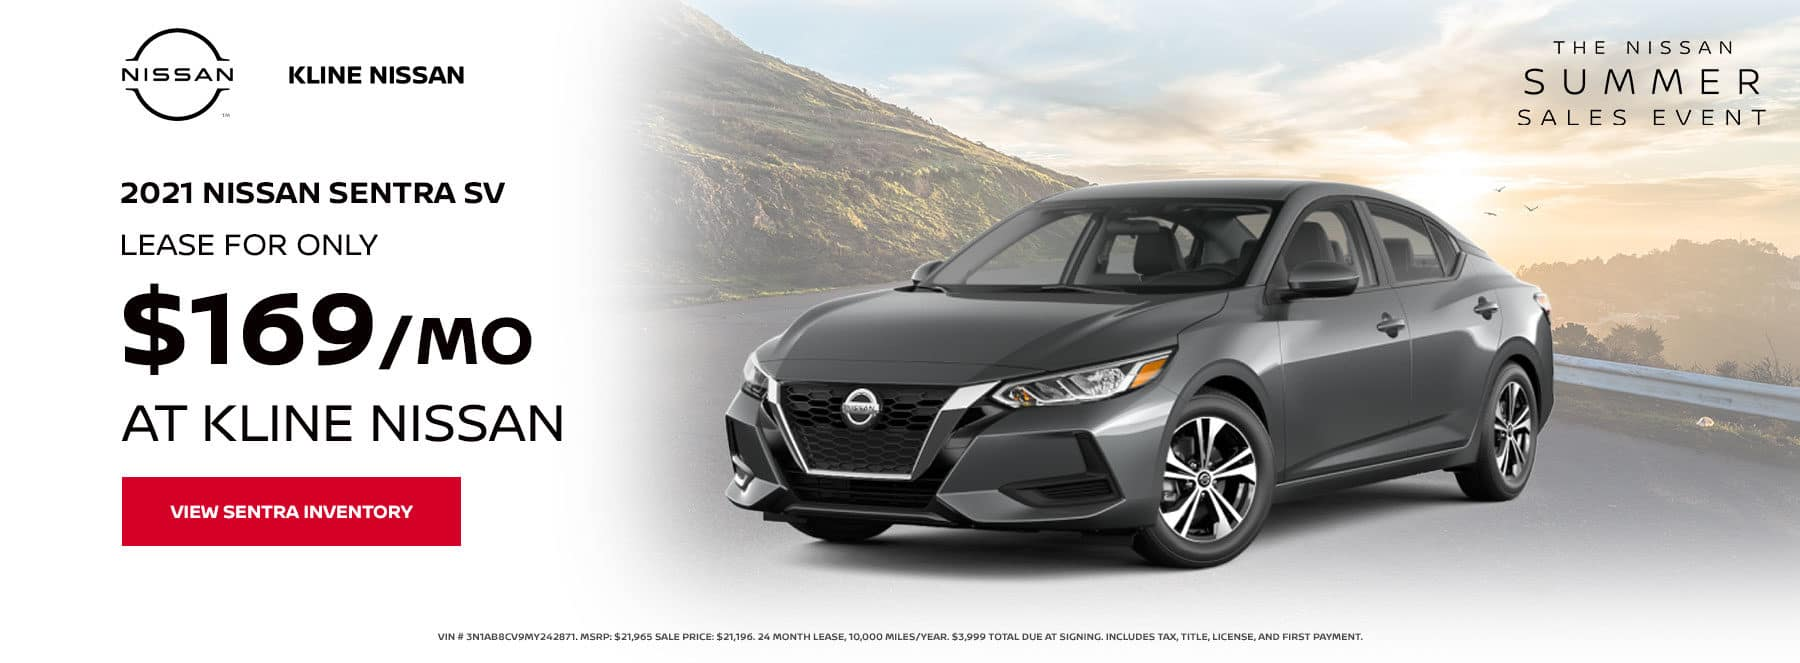 Lease a 2021 Nissan Sentra SV, for only $169/mo at Kline Nissan